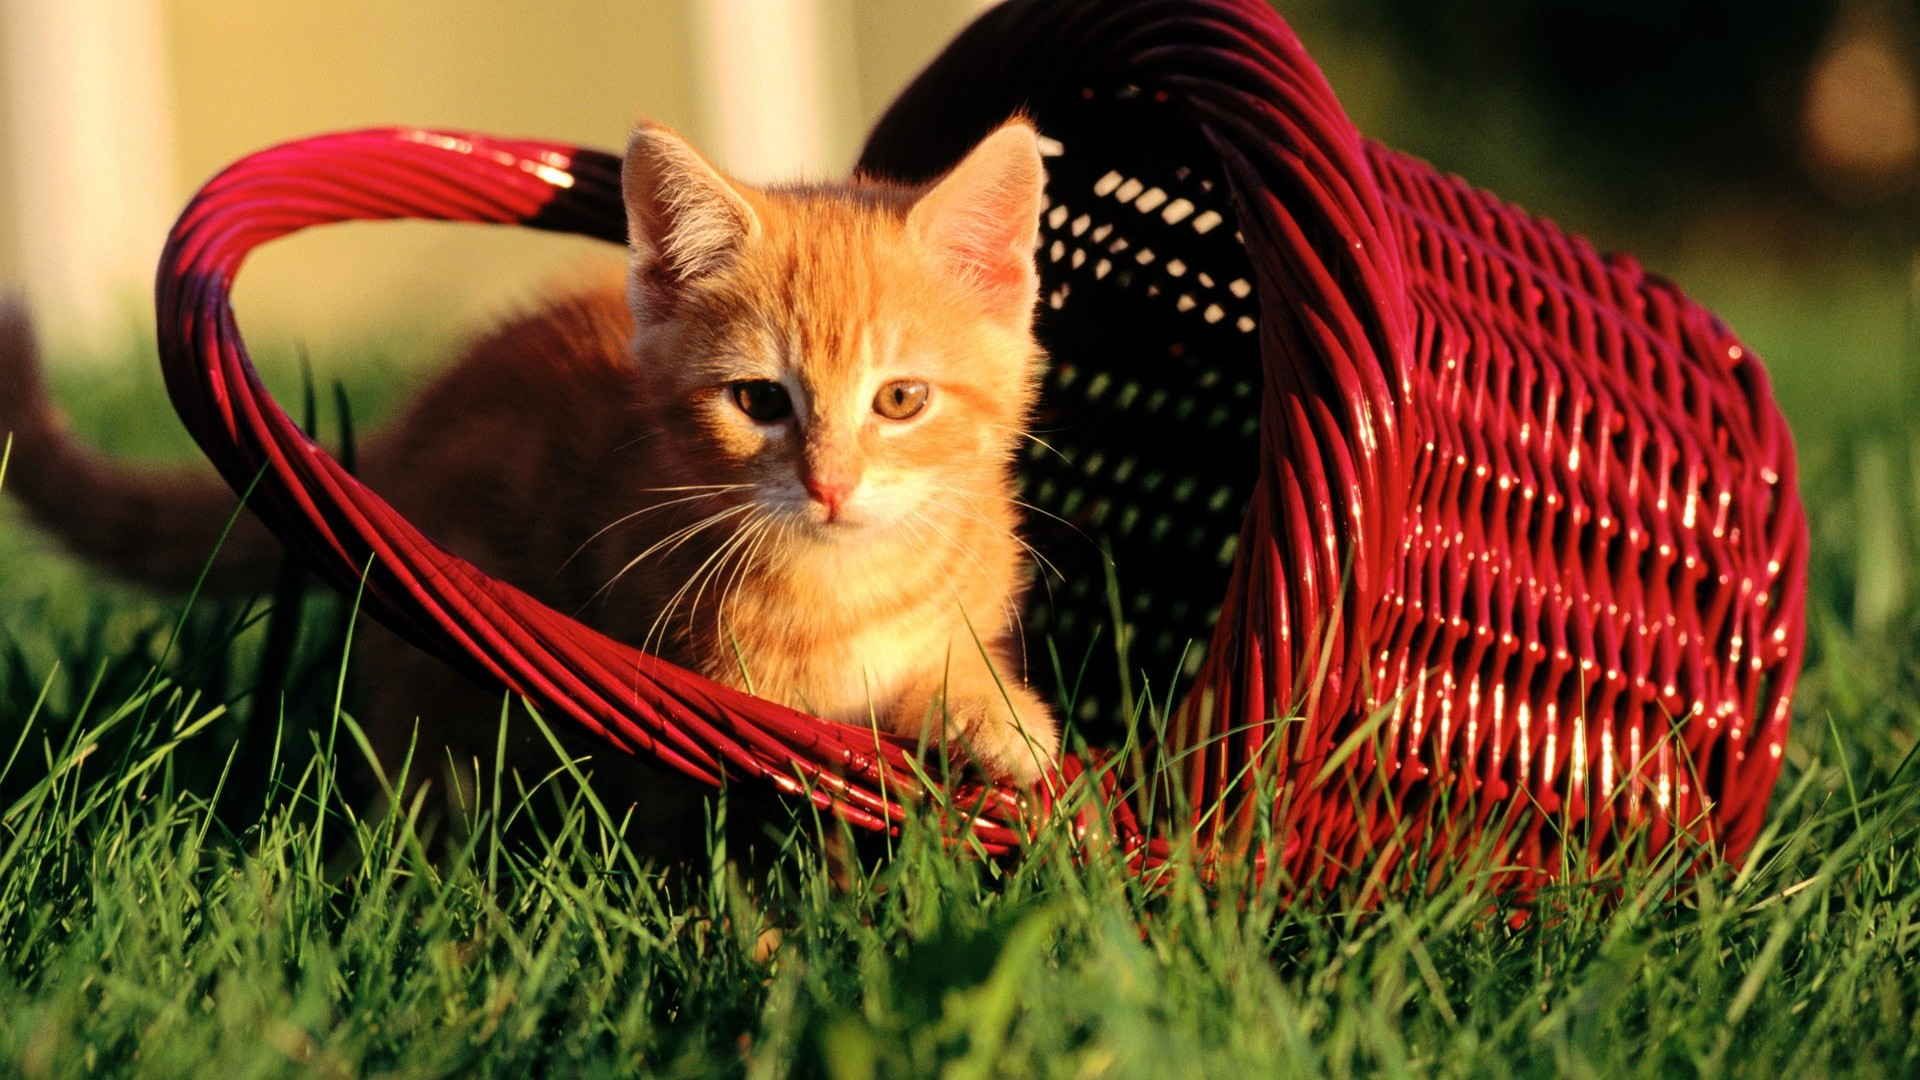 Cats Images Sweet Cat Hd Wallpaper And Background Photos 40609253